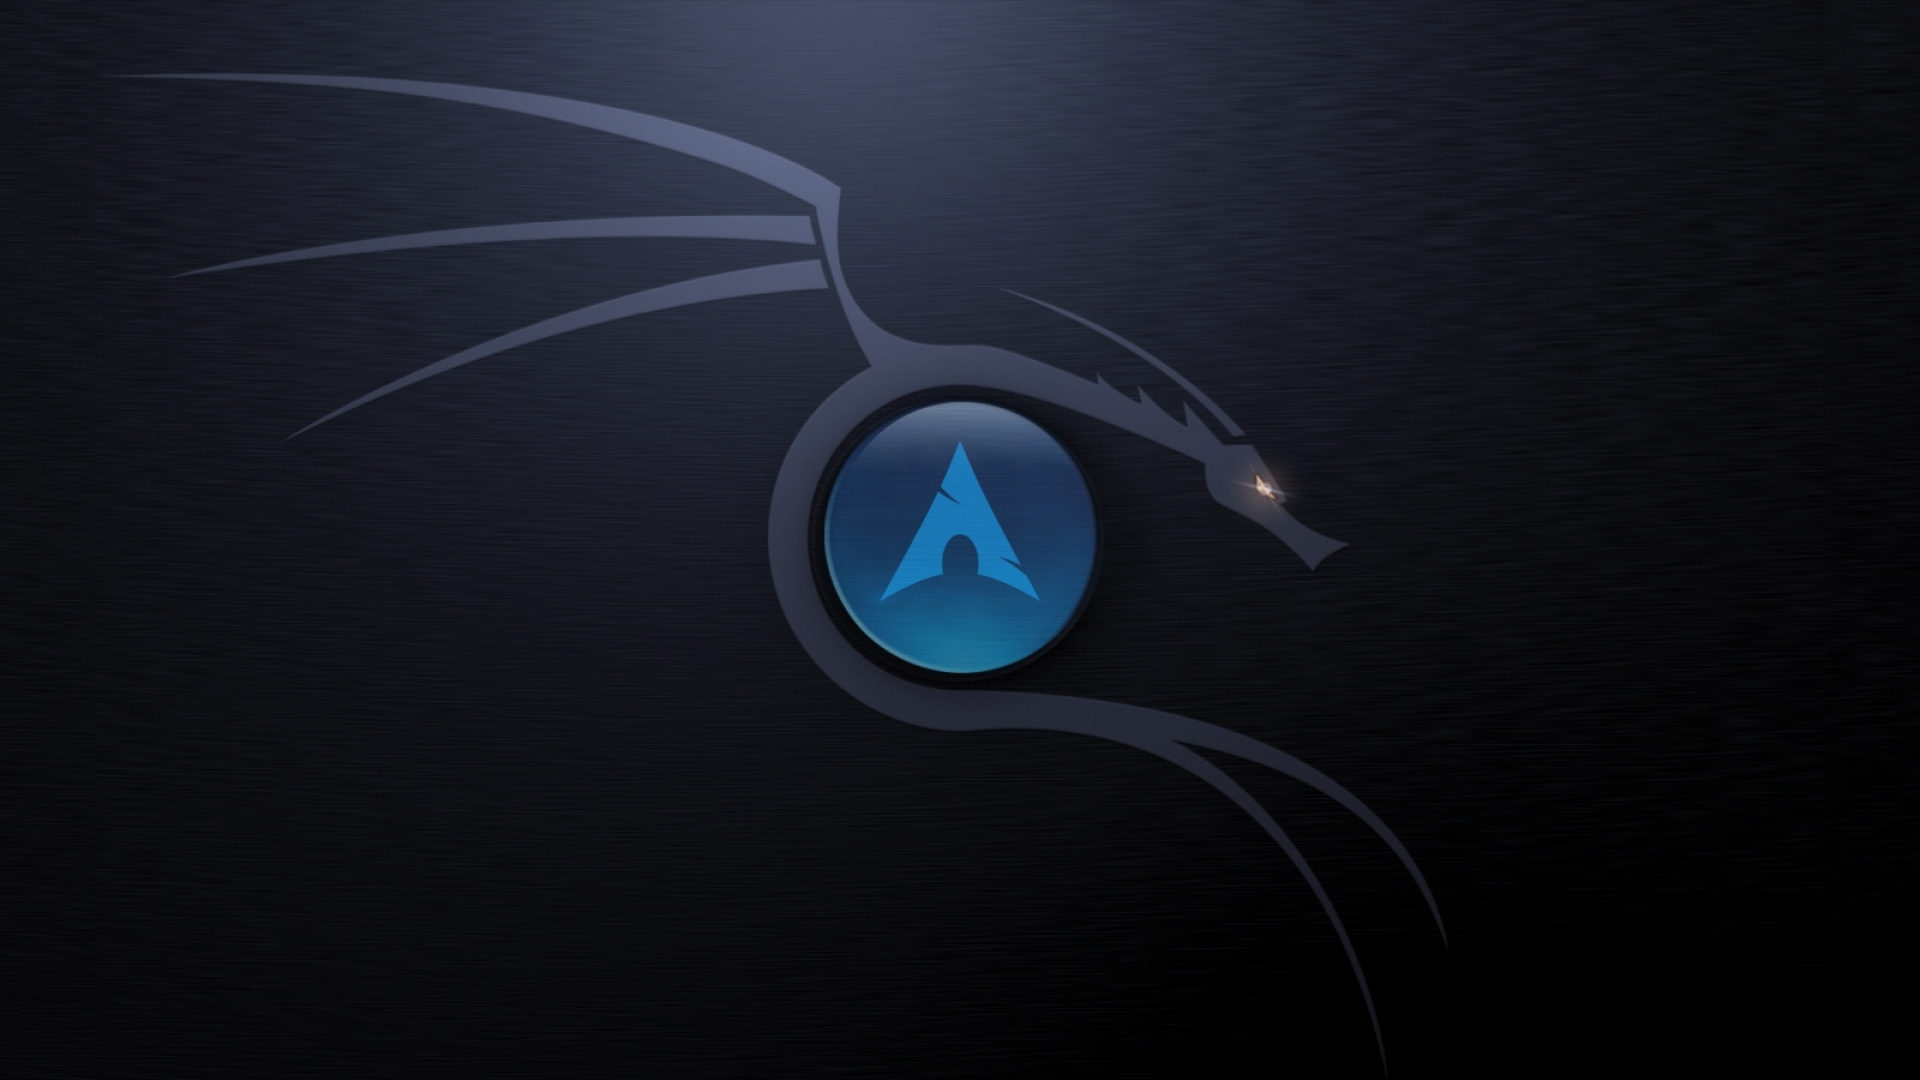 arch linux 1600x900 wallpaper Wallpaper Wallpapers Download 1920x1080